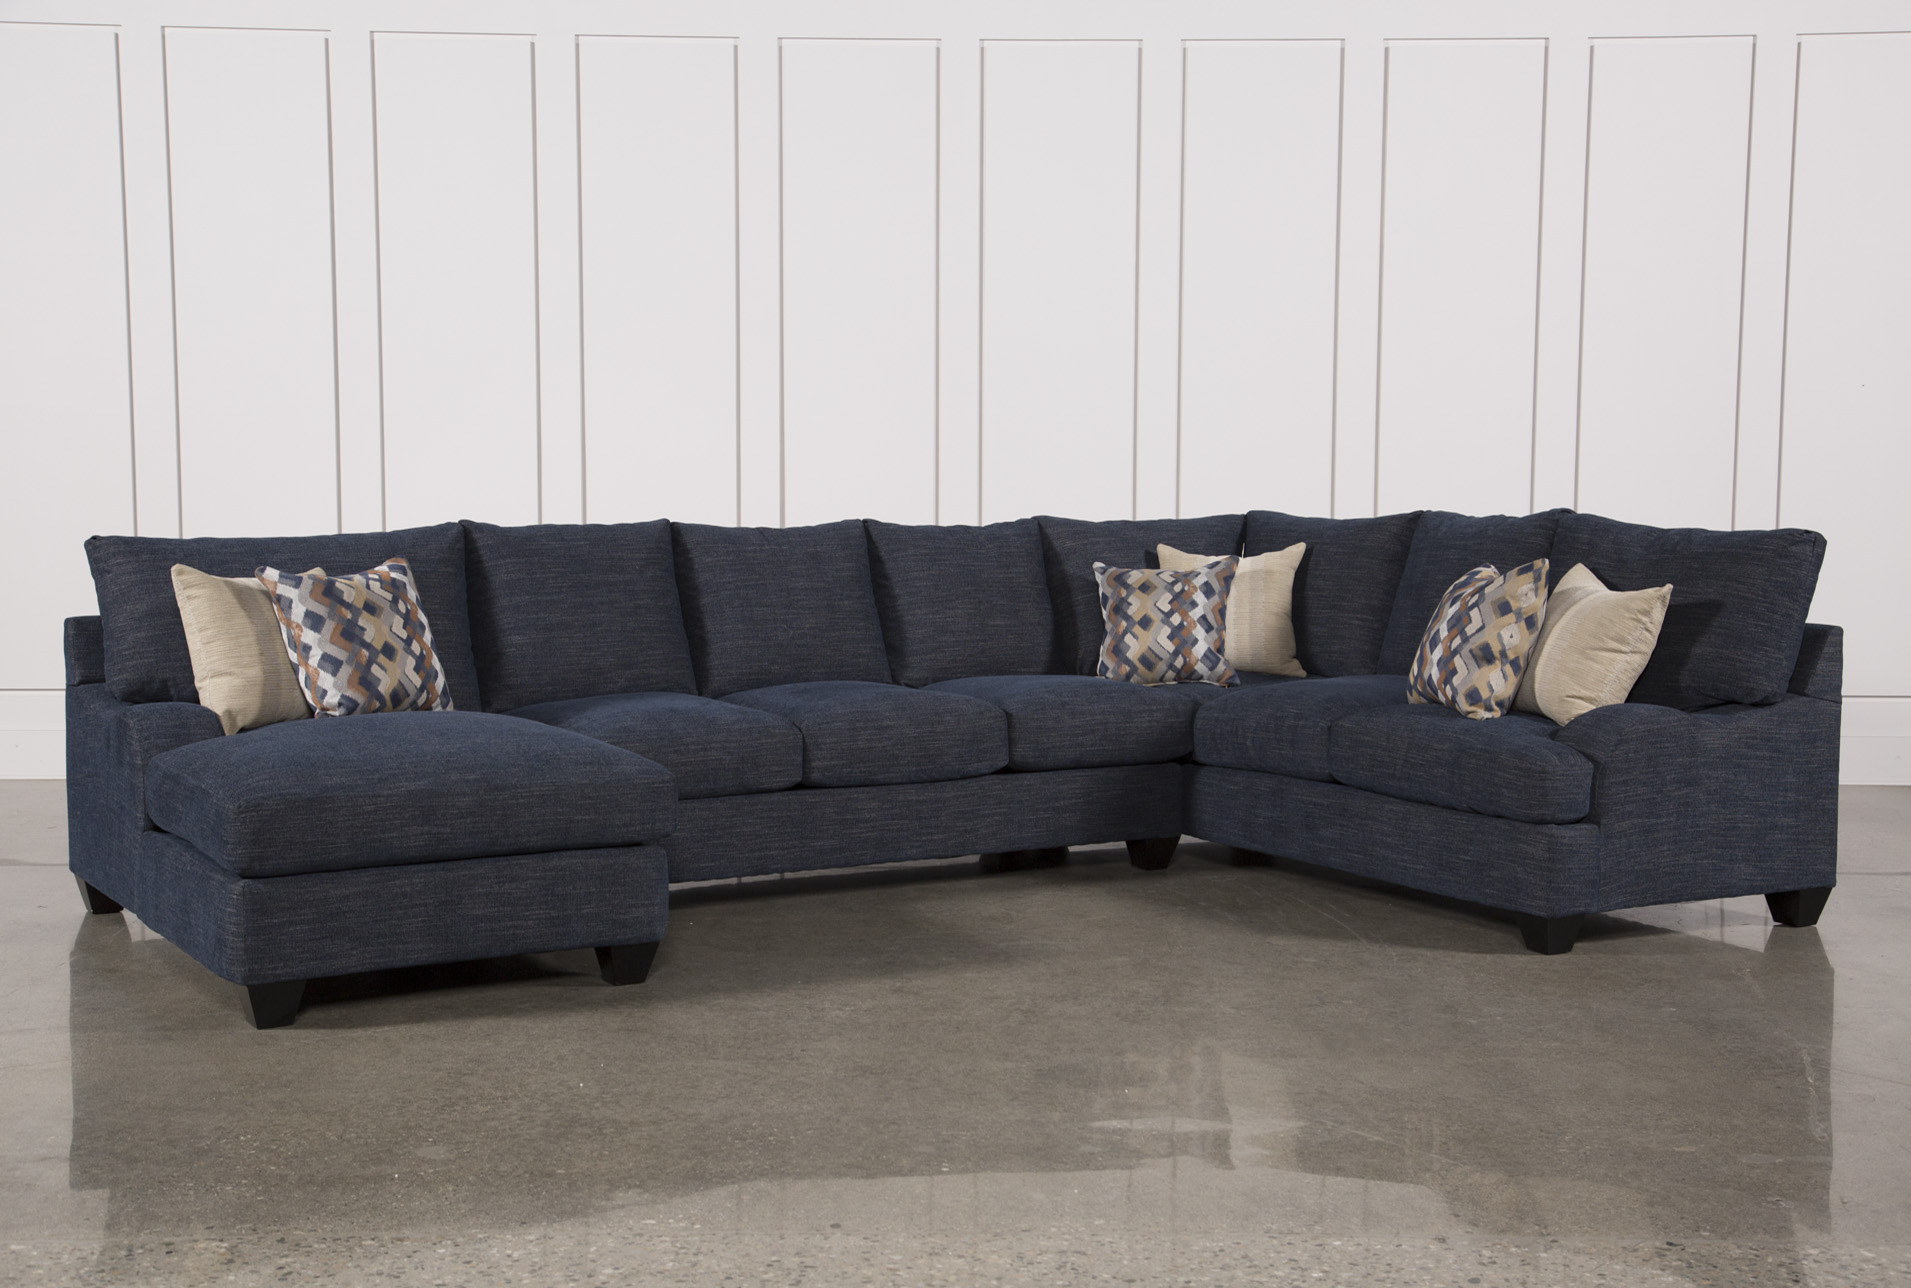 Sierra Down 3 Piece Sectional W/Laf Chaise (Qty: 1) Has Been Successfully  Added To Your Cart.